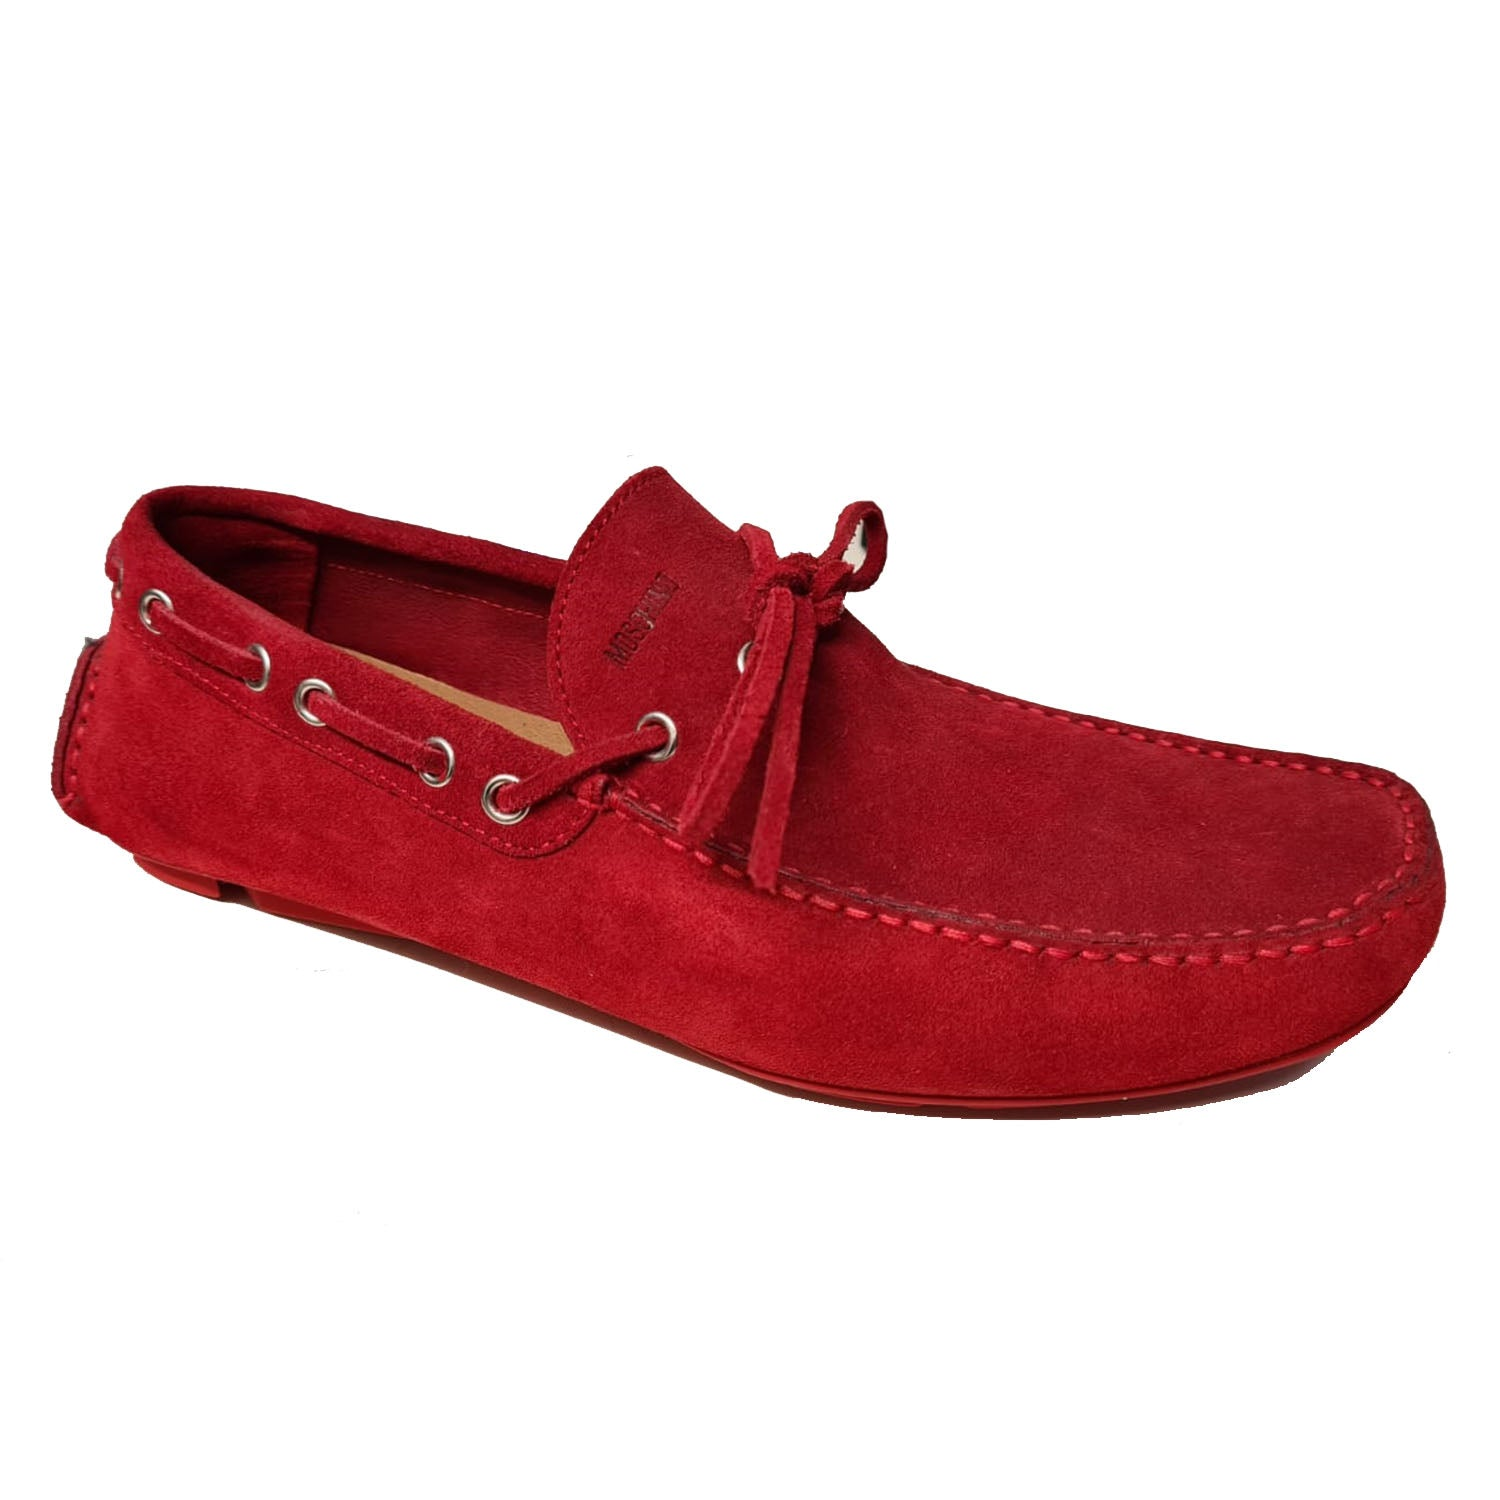 Moschino Crosta Suede Loafer